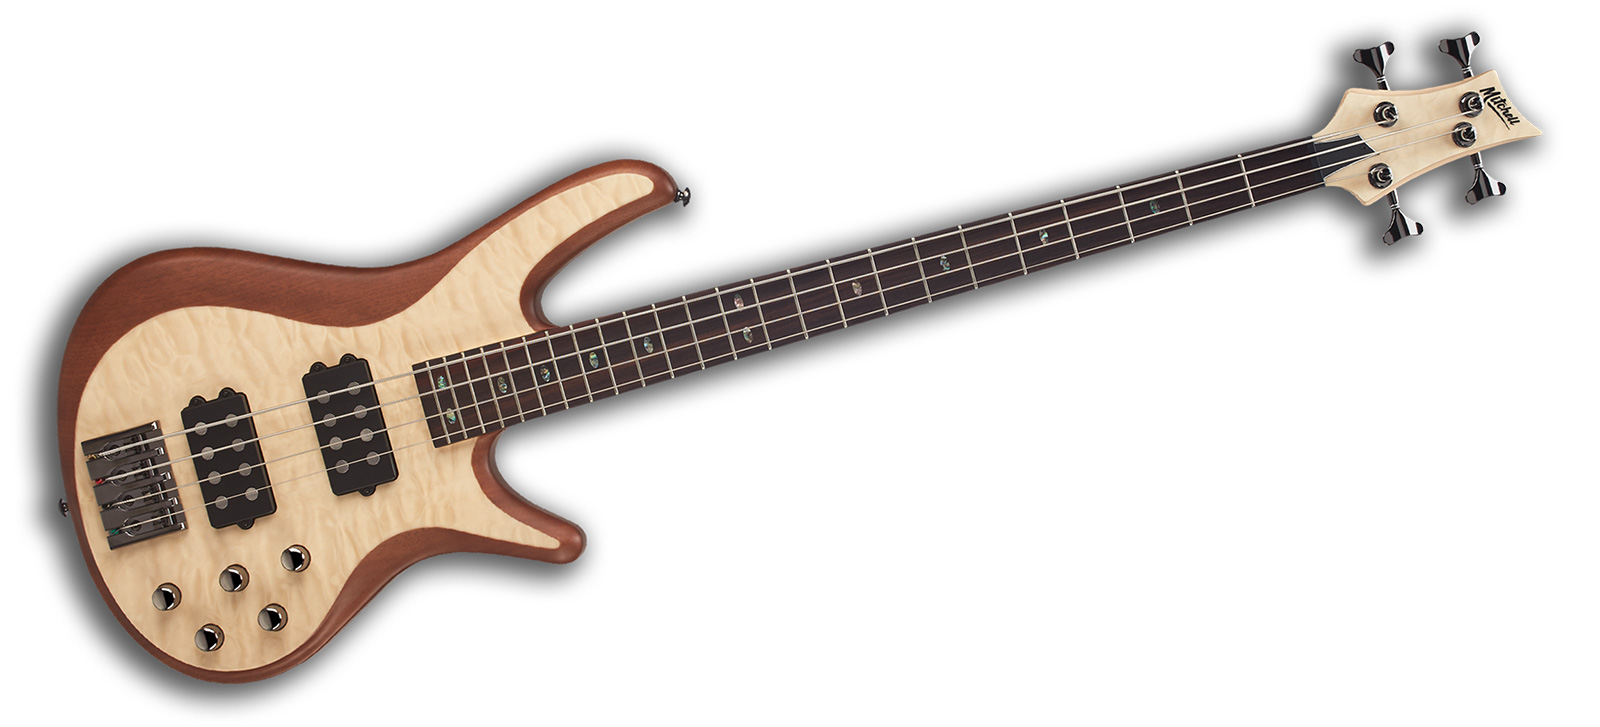 Mitchell Electric Guitars FB700 Series Bass